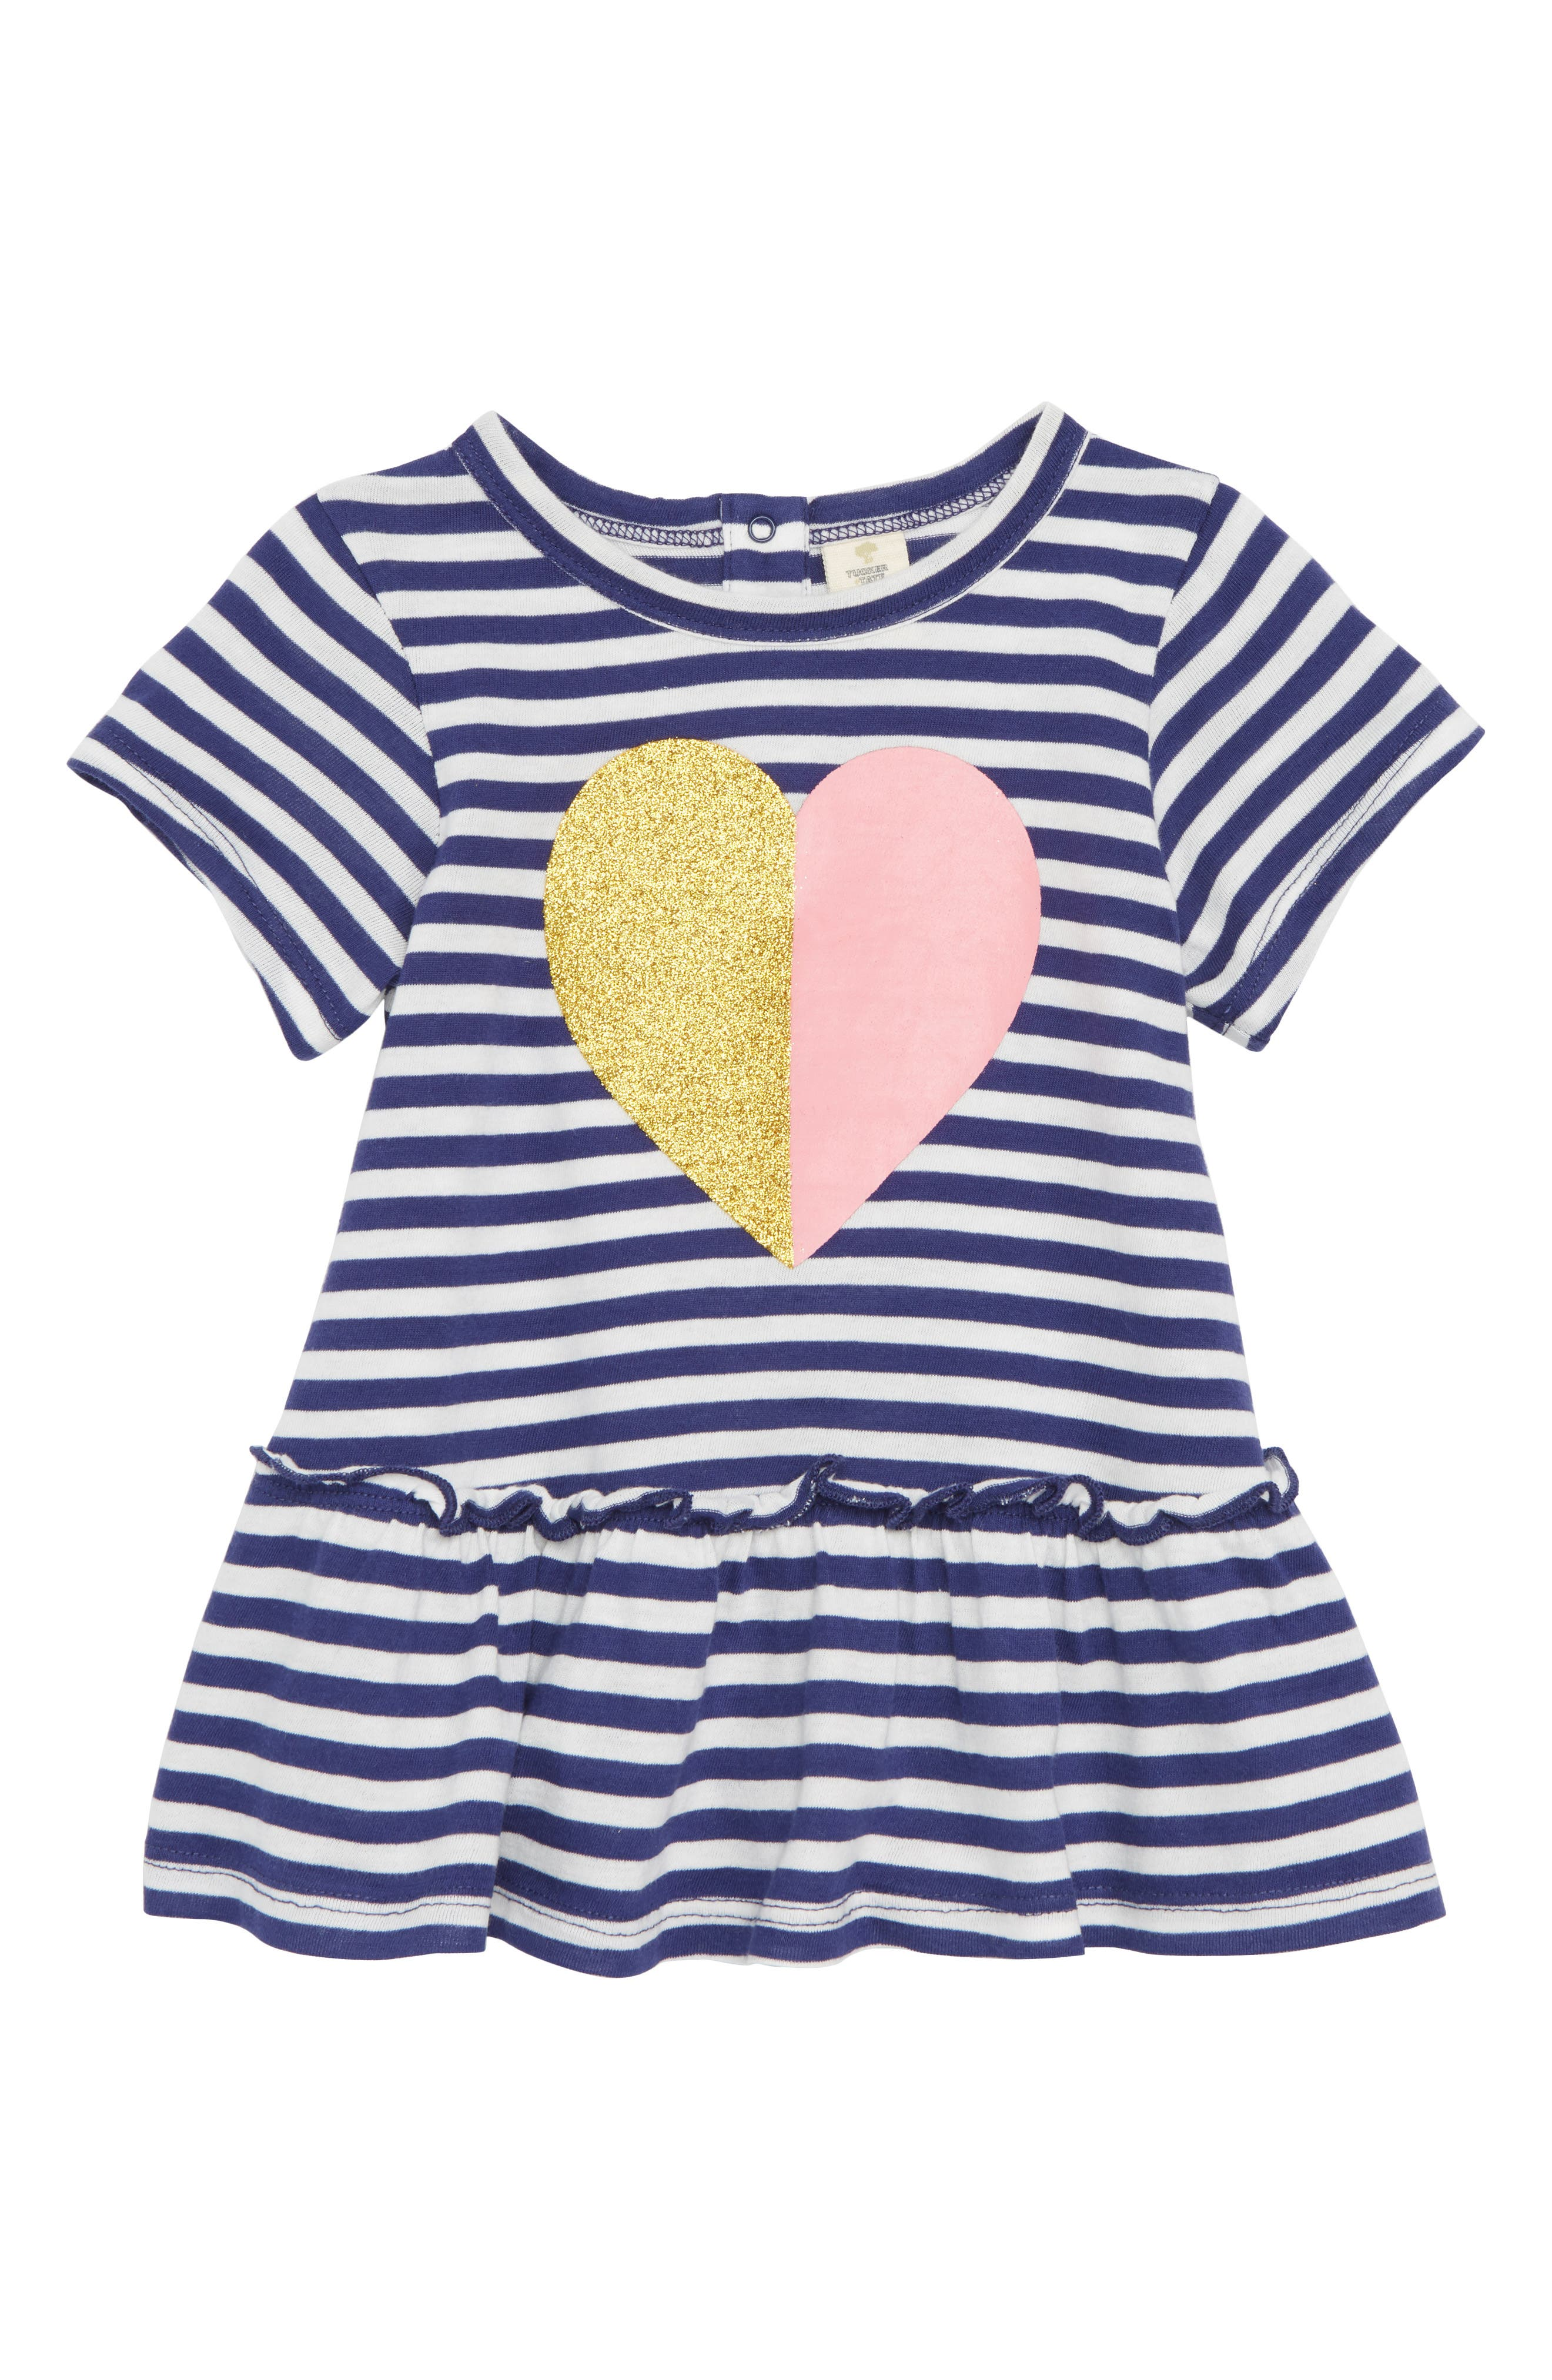 Stripe Peplum Graphic Top,                             Main thumbnail 1, color,                             Navy Ribbon Sparkle Heart